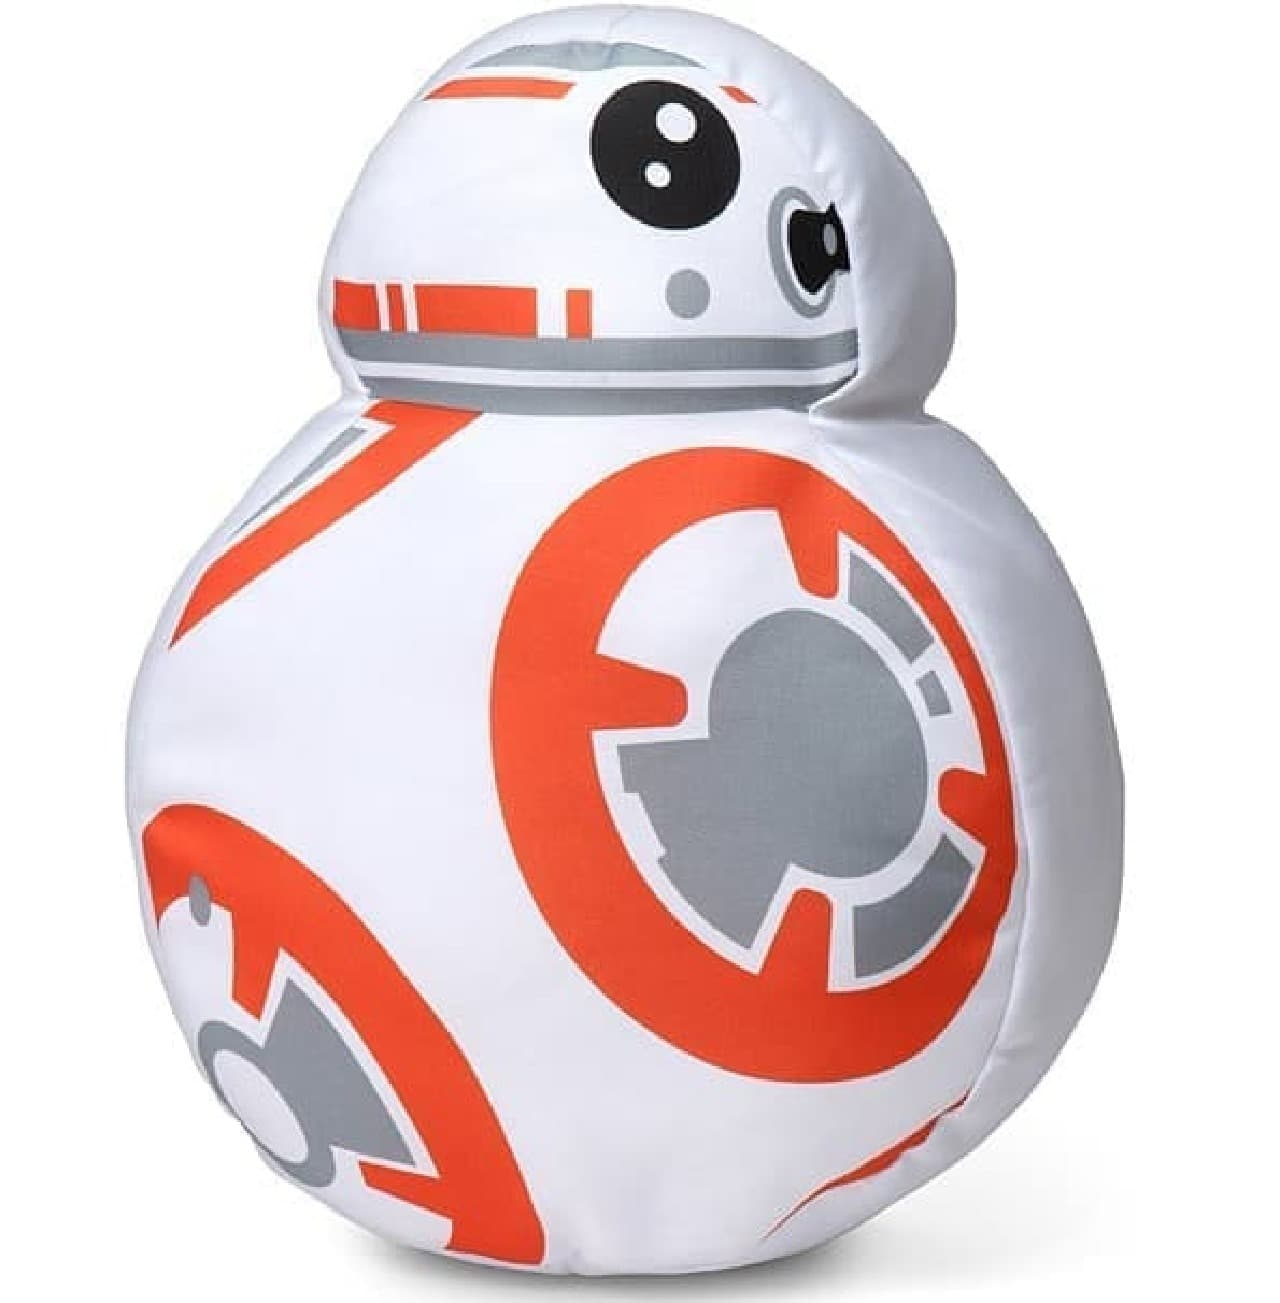 BB-8型のクッション「Star Wars BB-8 Throw Pillow」